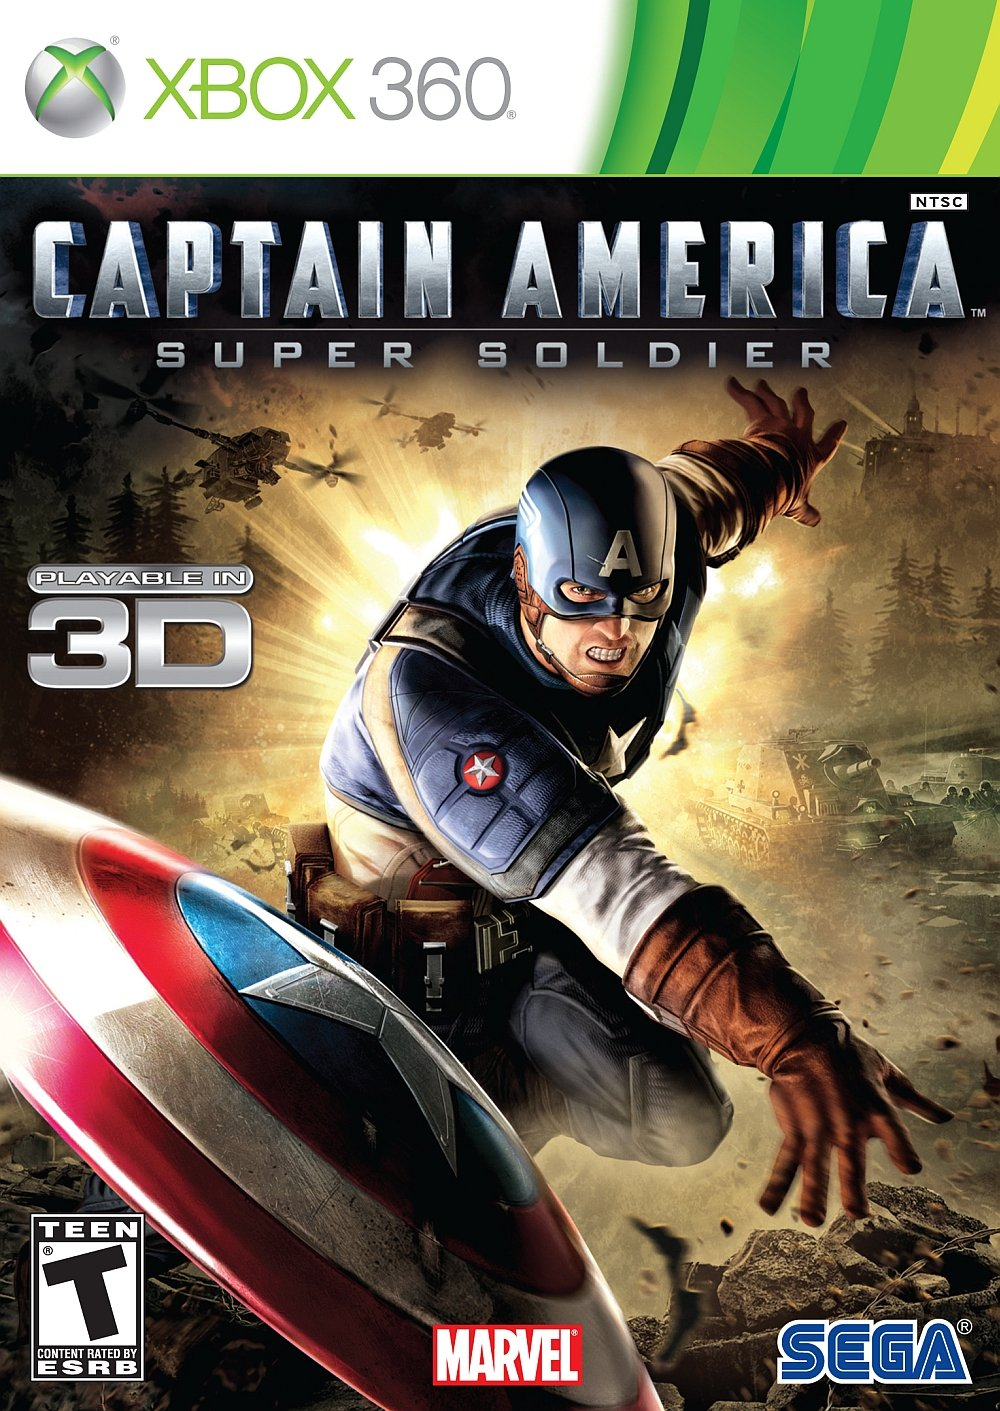 06. Captain-America-Super-Soldier_X360.jpg